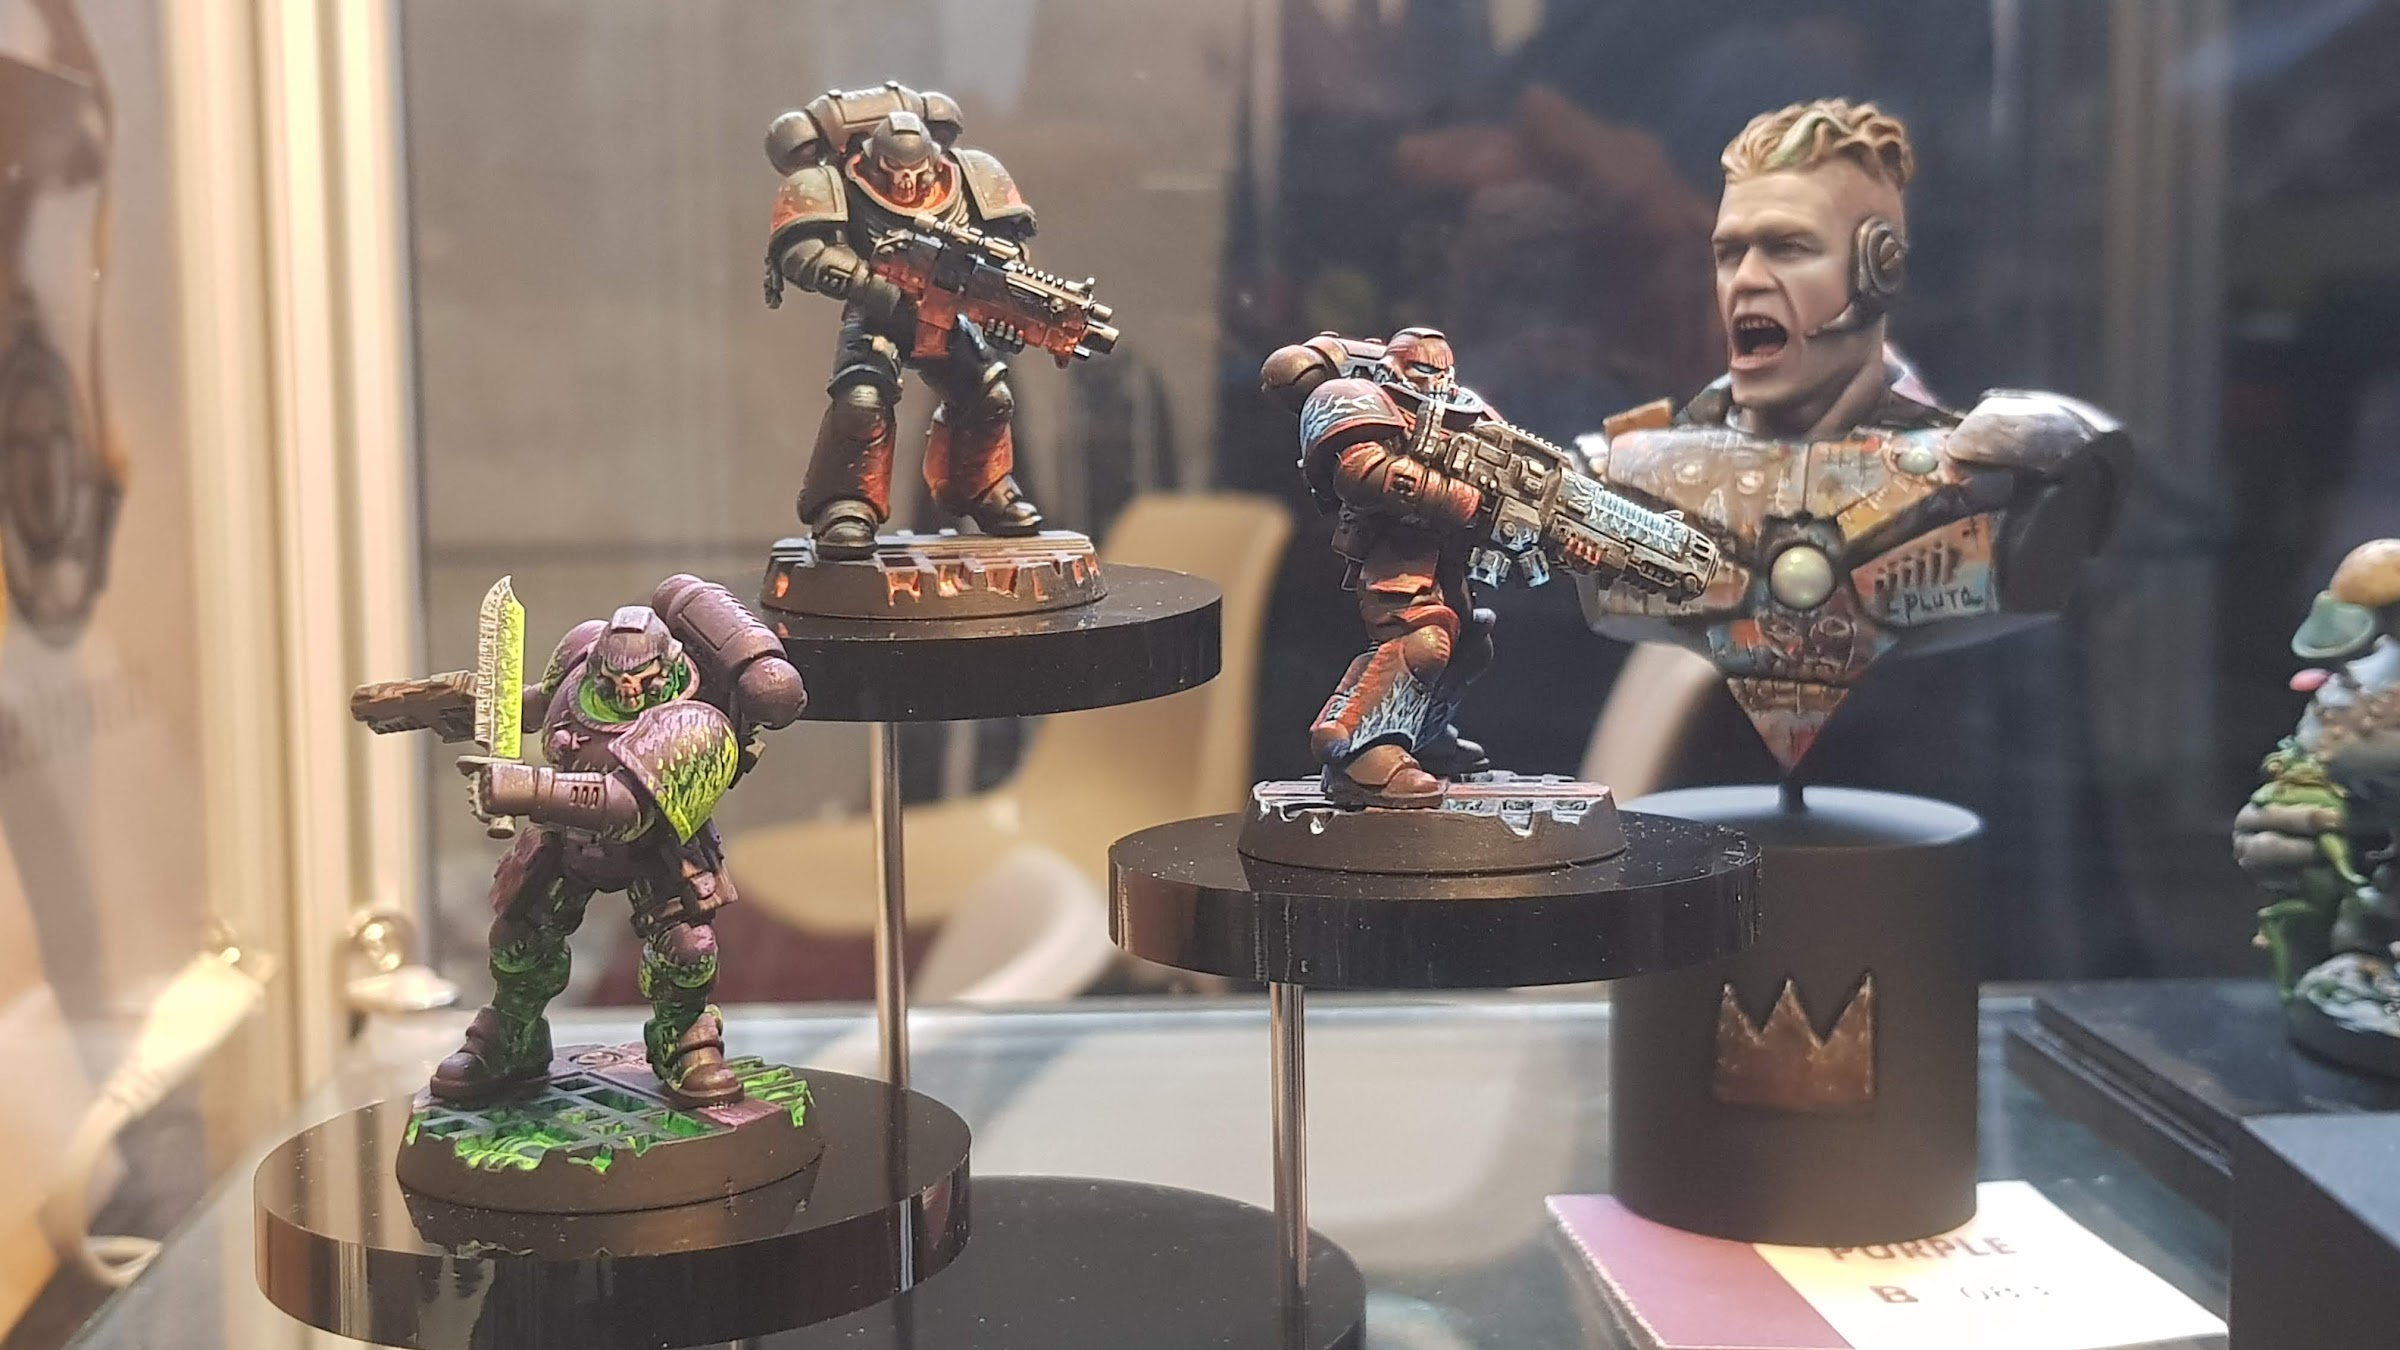 Some of the entries in the painting competition